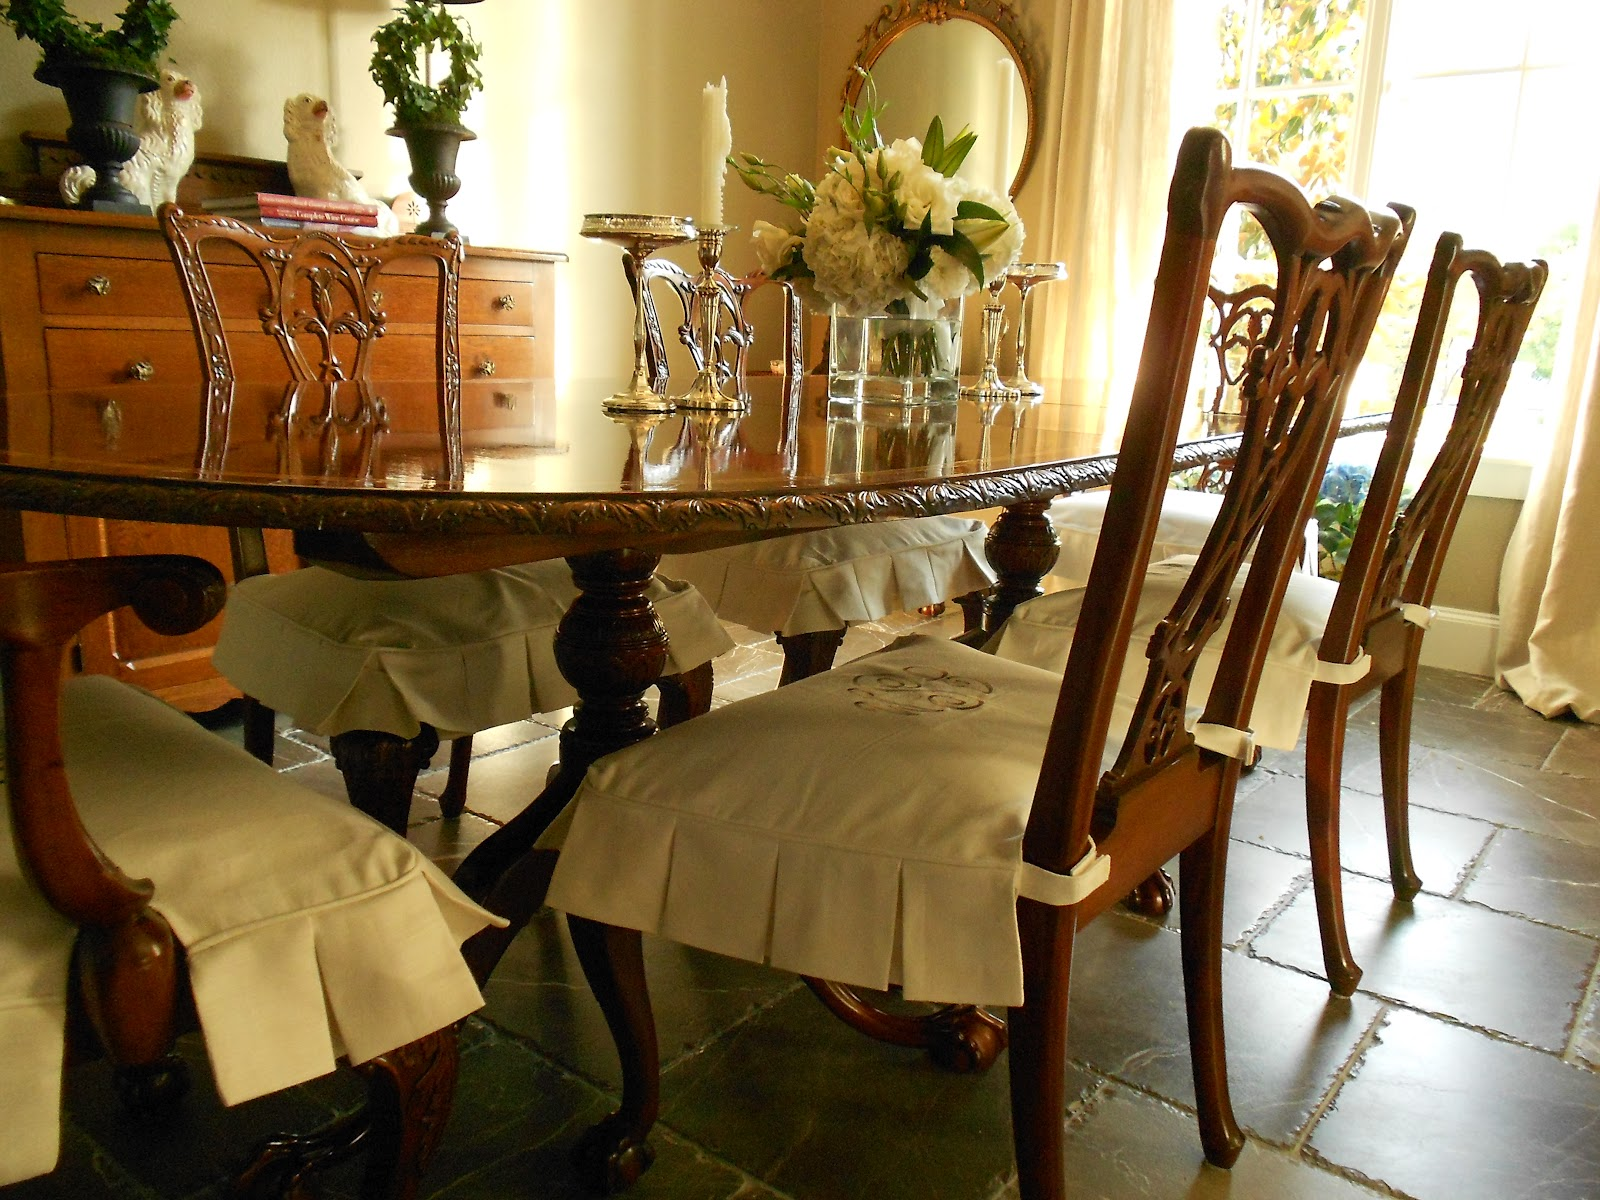 Custom Dining Chair Slipcovers Fishing Legs My Faux French Chateau Monogrammed Room